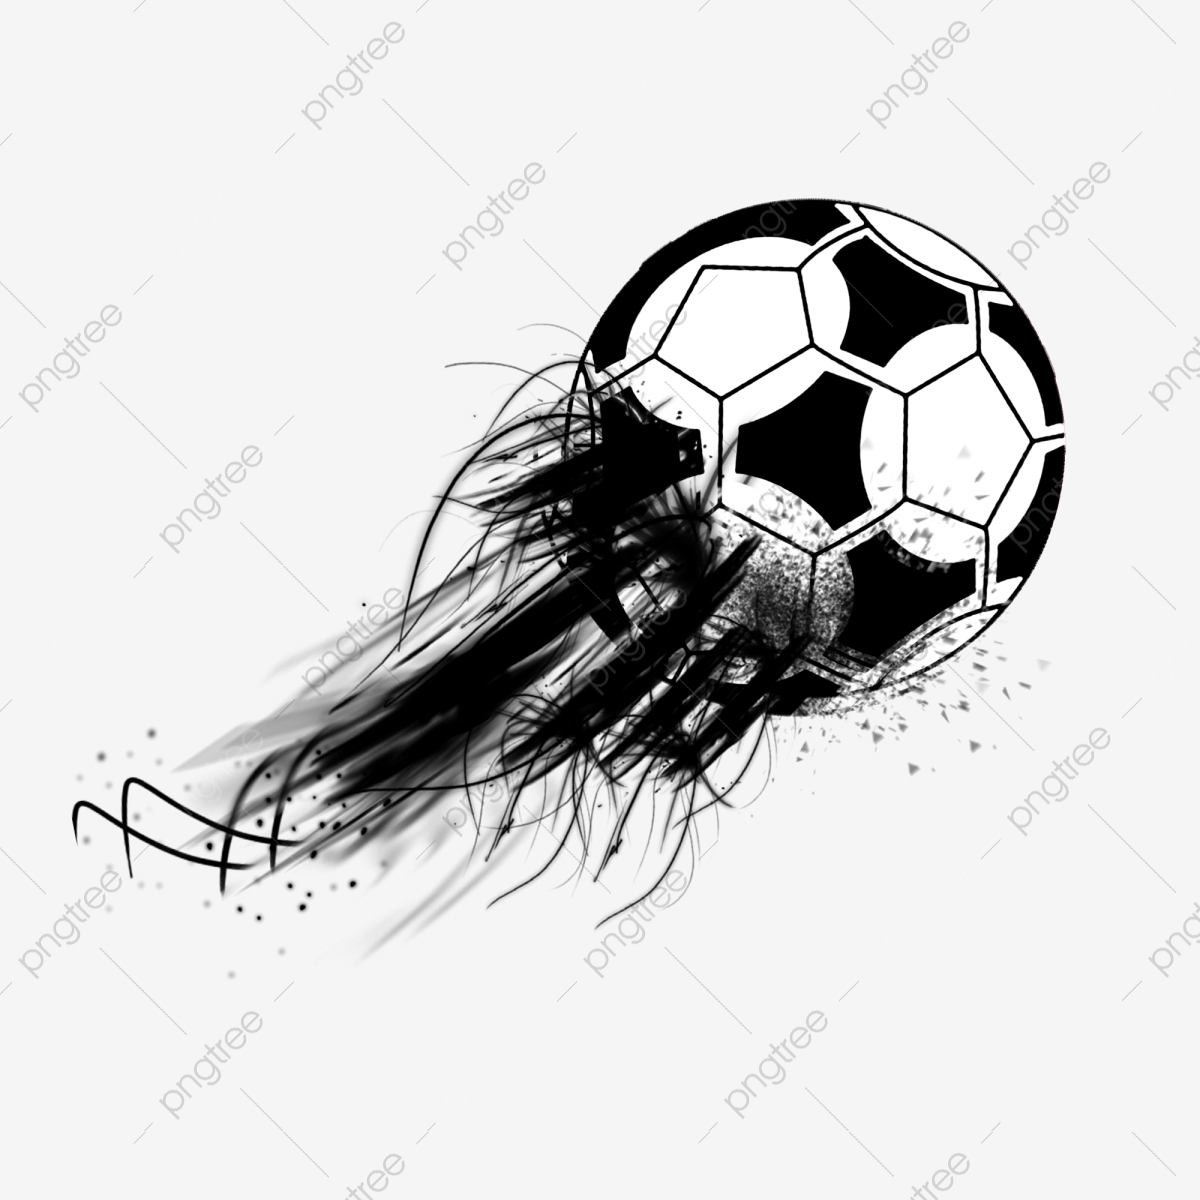 Football clipart black and white free clipart images 2 - Cliparting.com